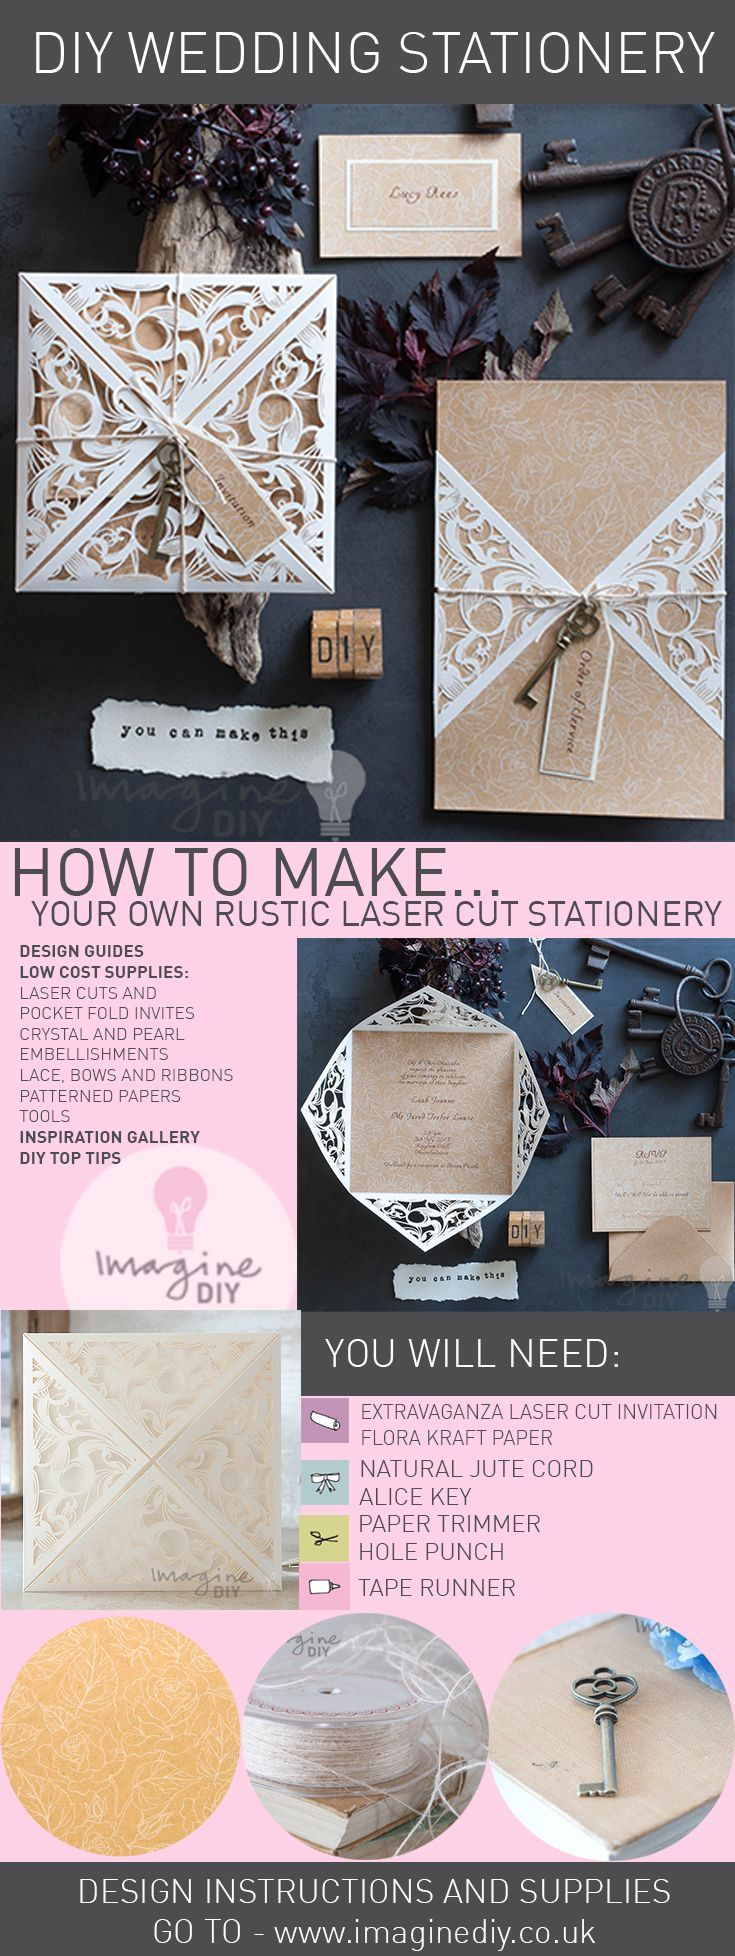 269 best how to make diy wedding stationery images on pinterest your own diy wedding stationery junglespirit Images